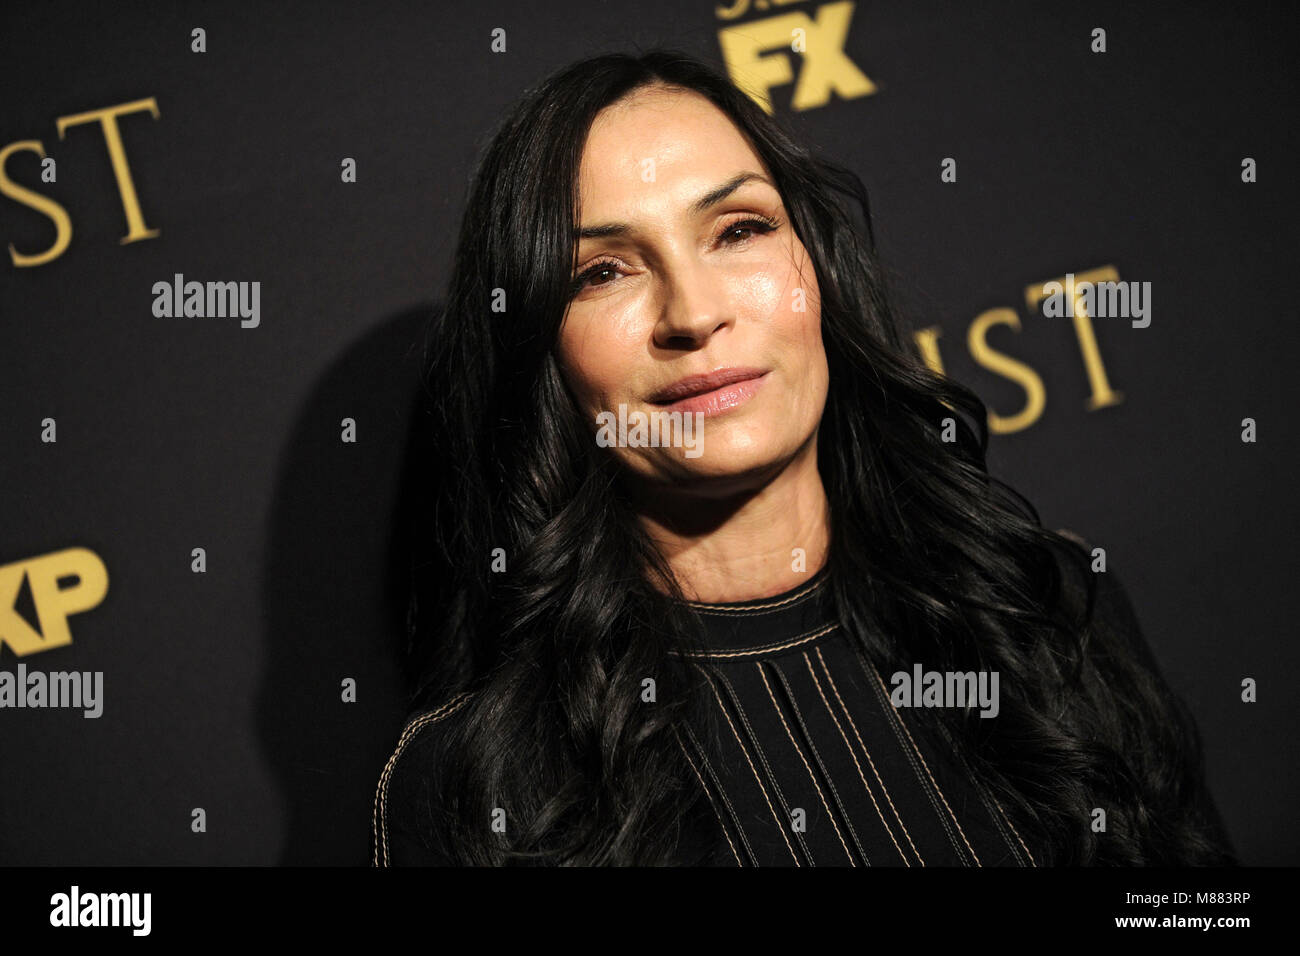 Famke Janssen attending the FX Networks' 'Trust' New York Screening at Florence Gould Hall on March - Stock Image